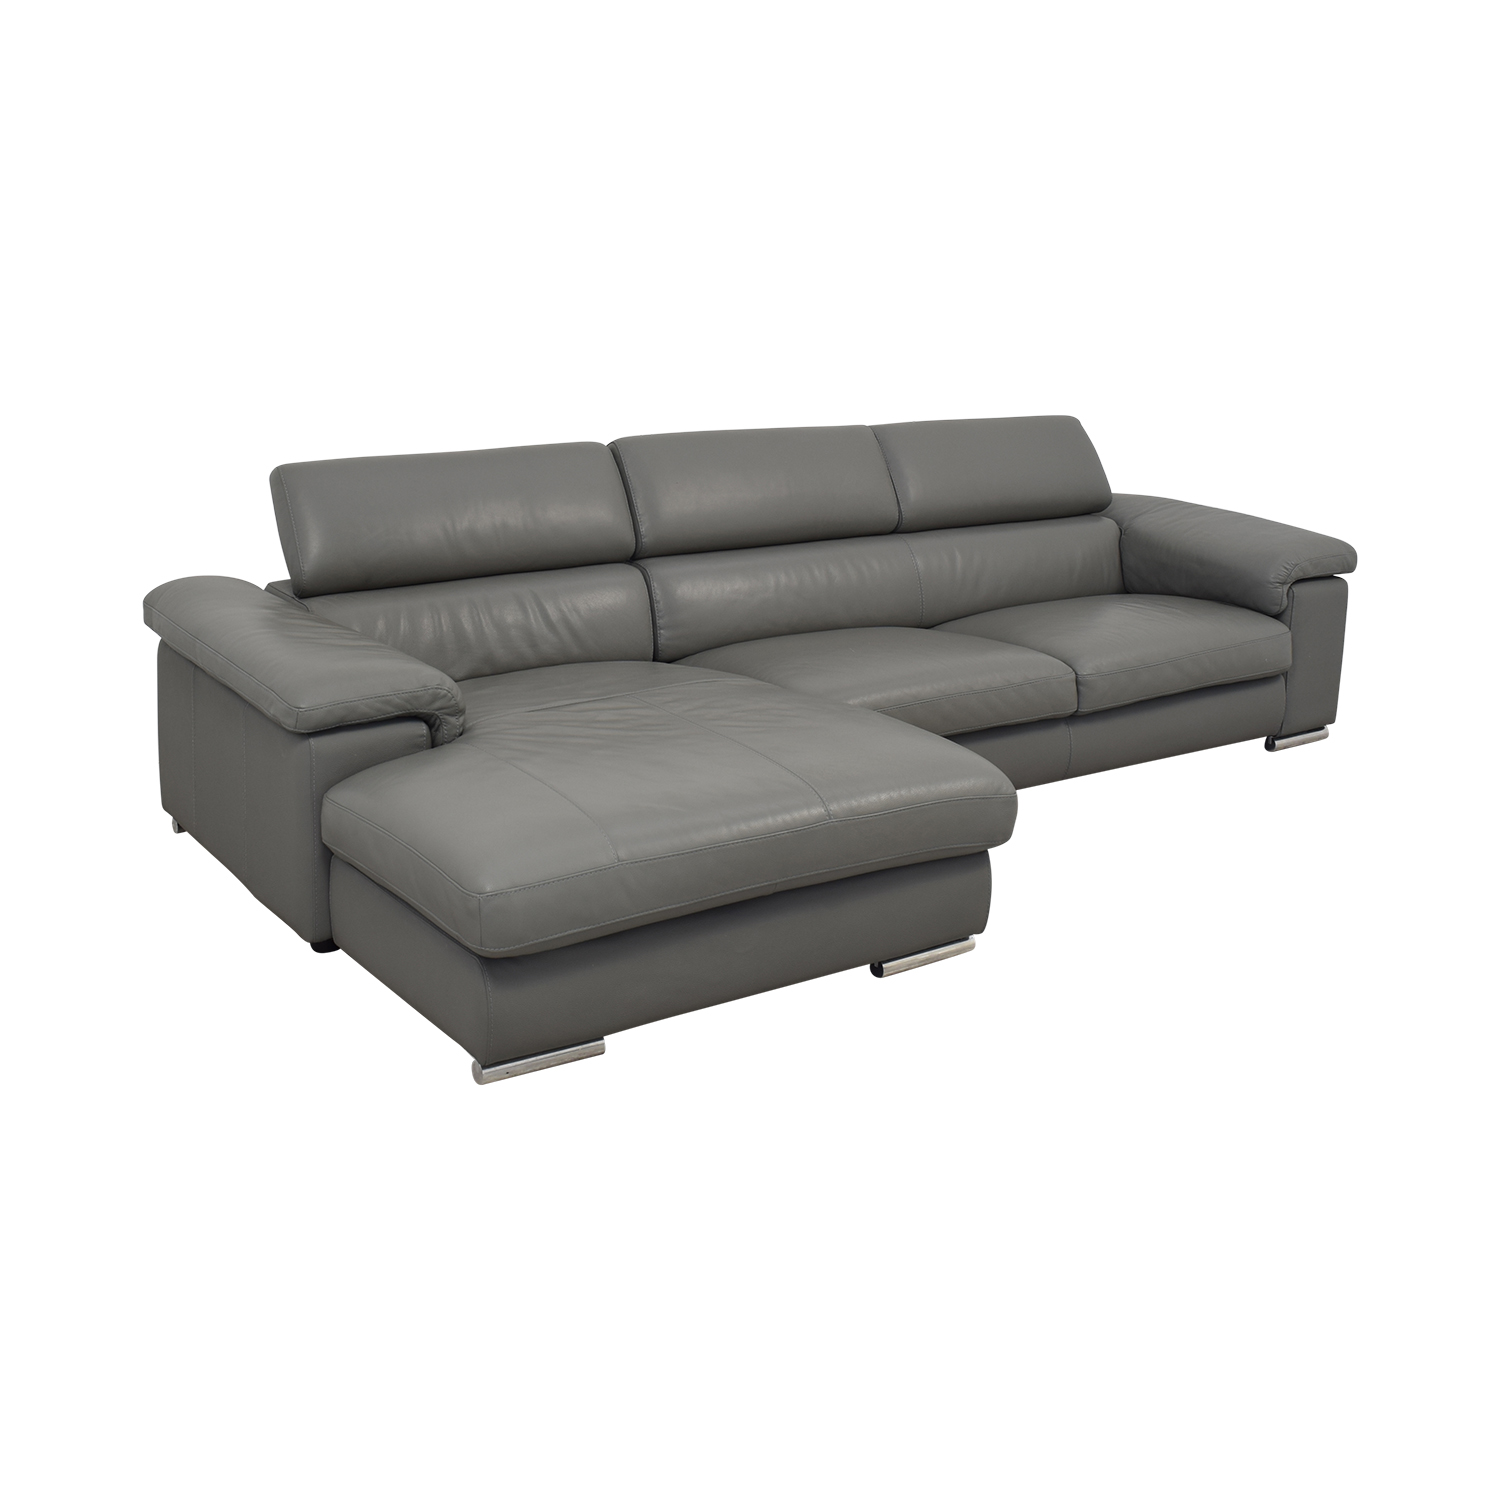 Tui Lifestyle Grey Signature Sectional Sofa / Sectionals